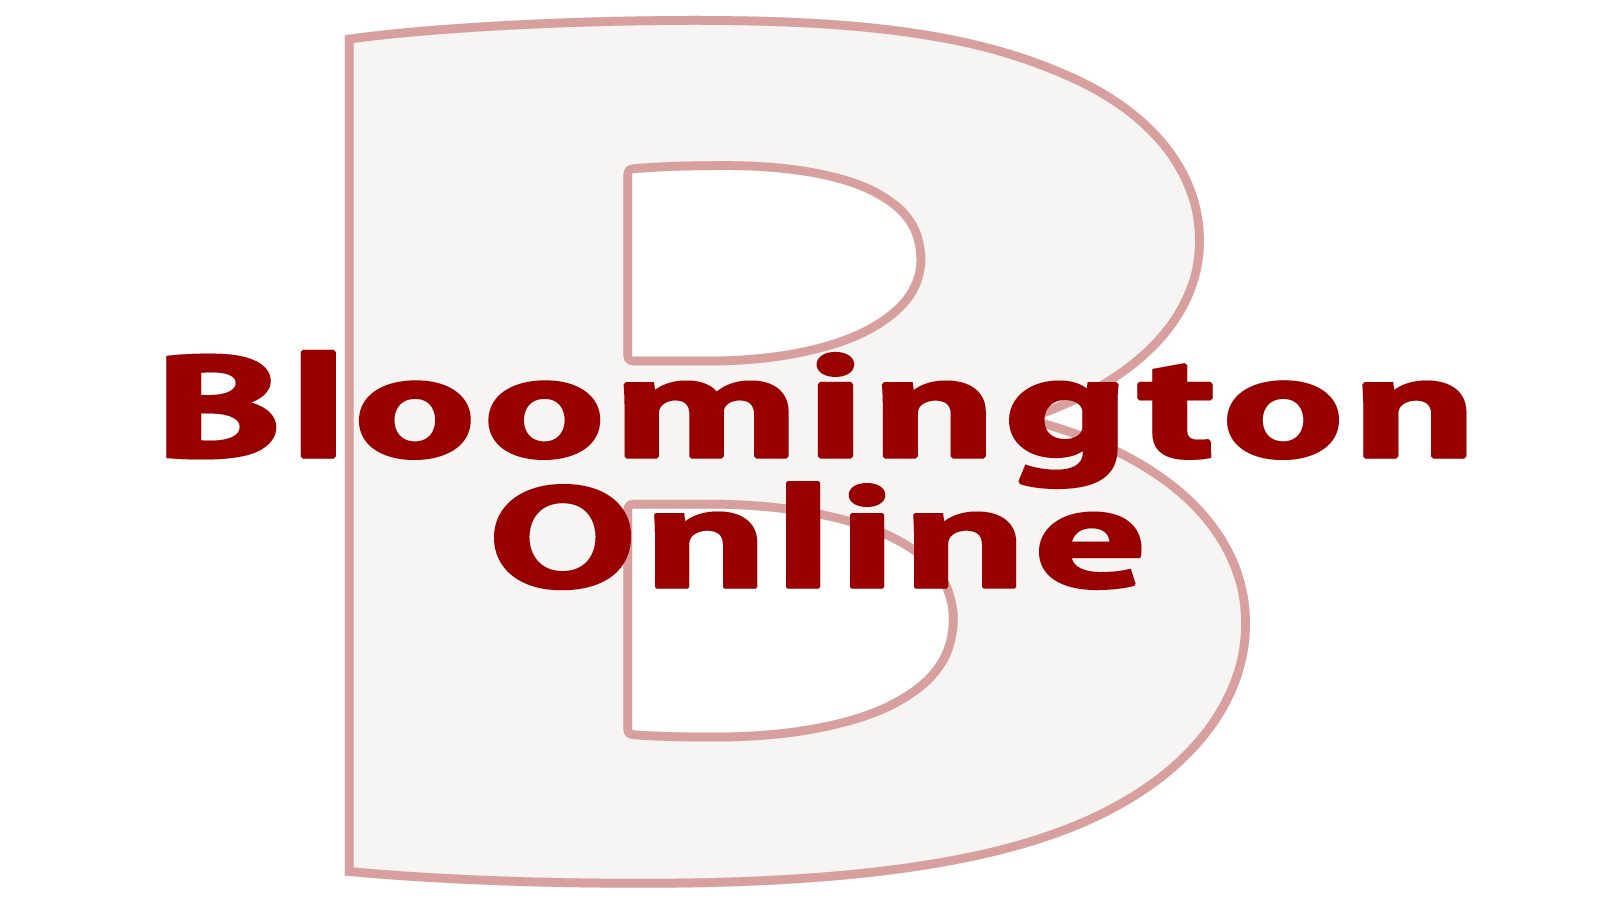 Bloomington Online